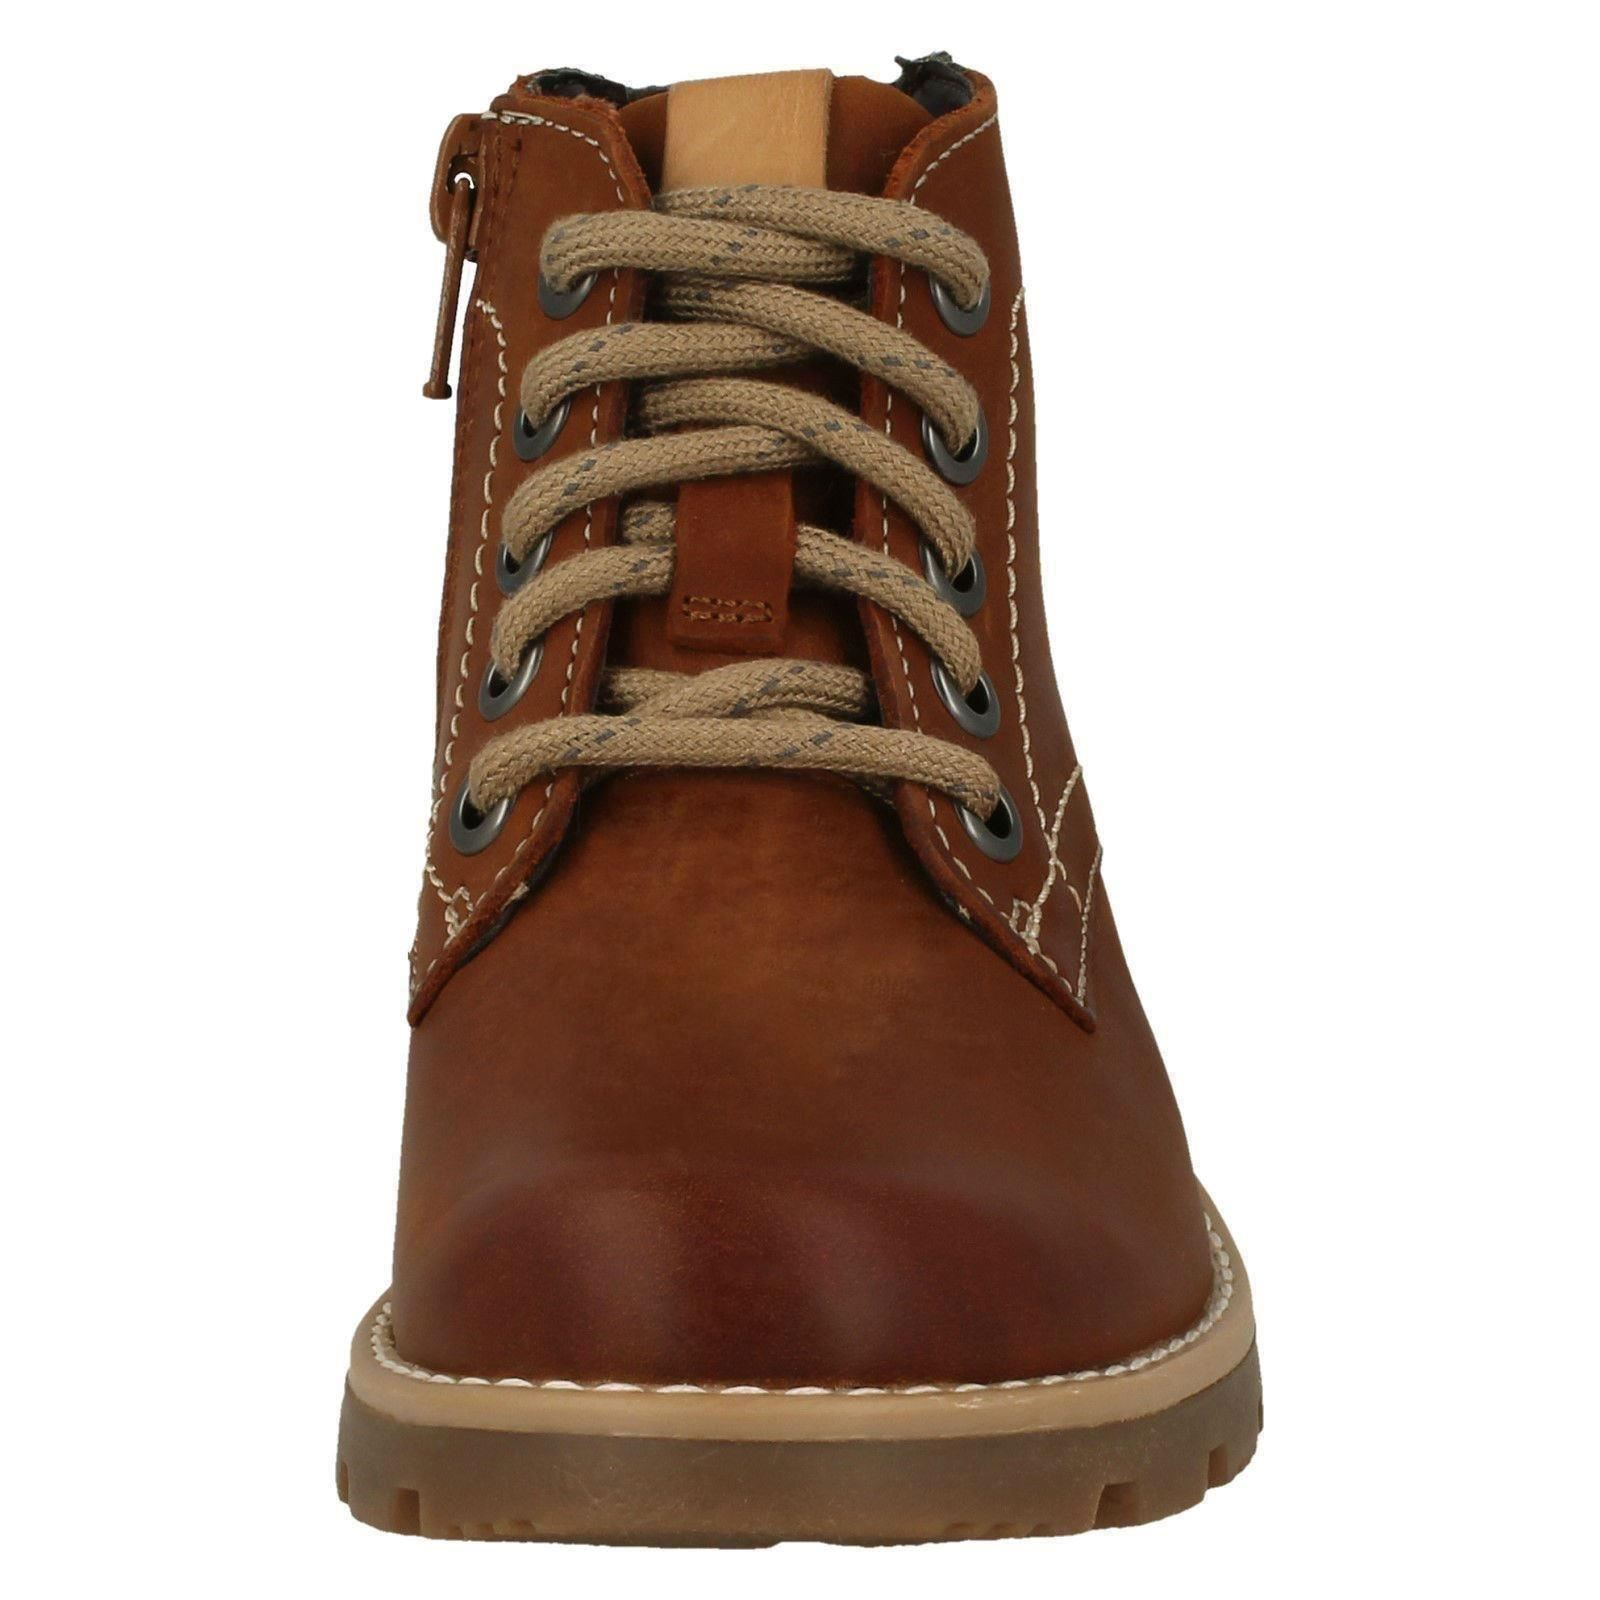 Comet Rock Boys Clarks Lace Up Detailed Ankle Boots